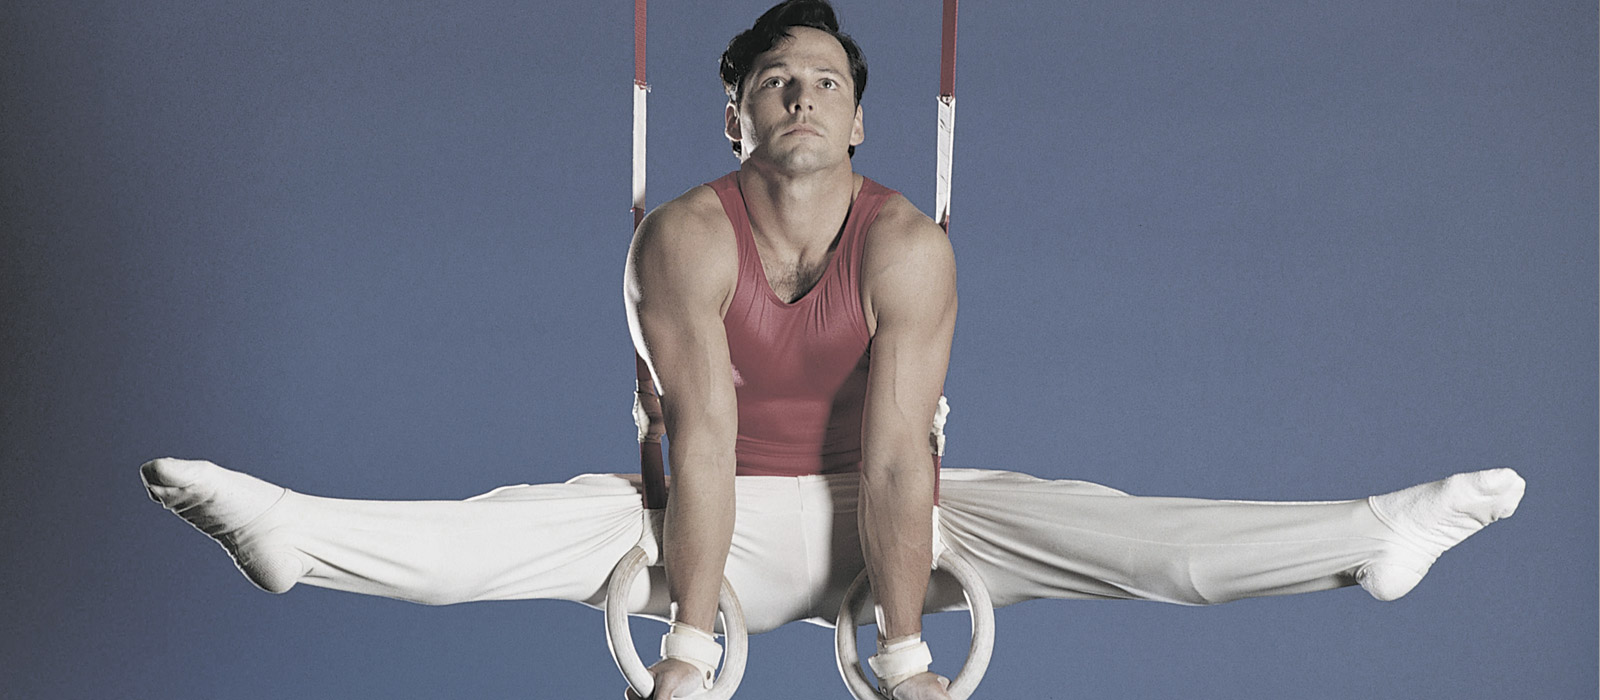 GYMNASTICS STRENGTH BENEFITS